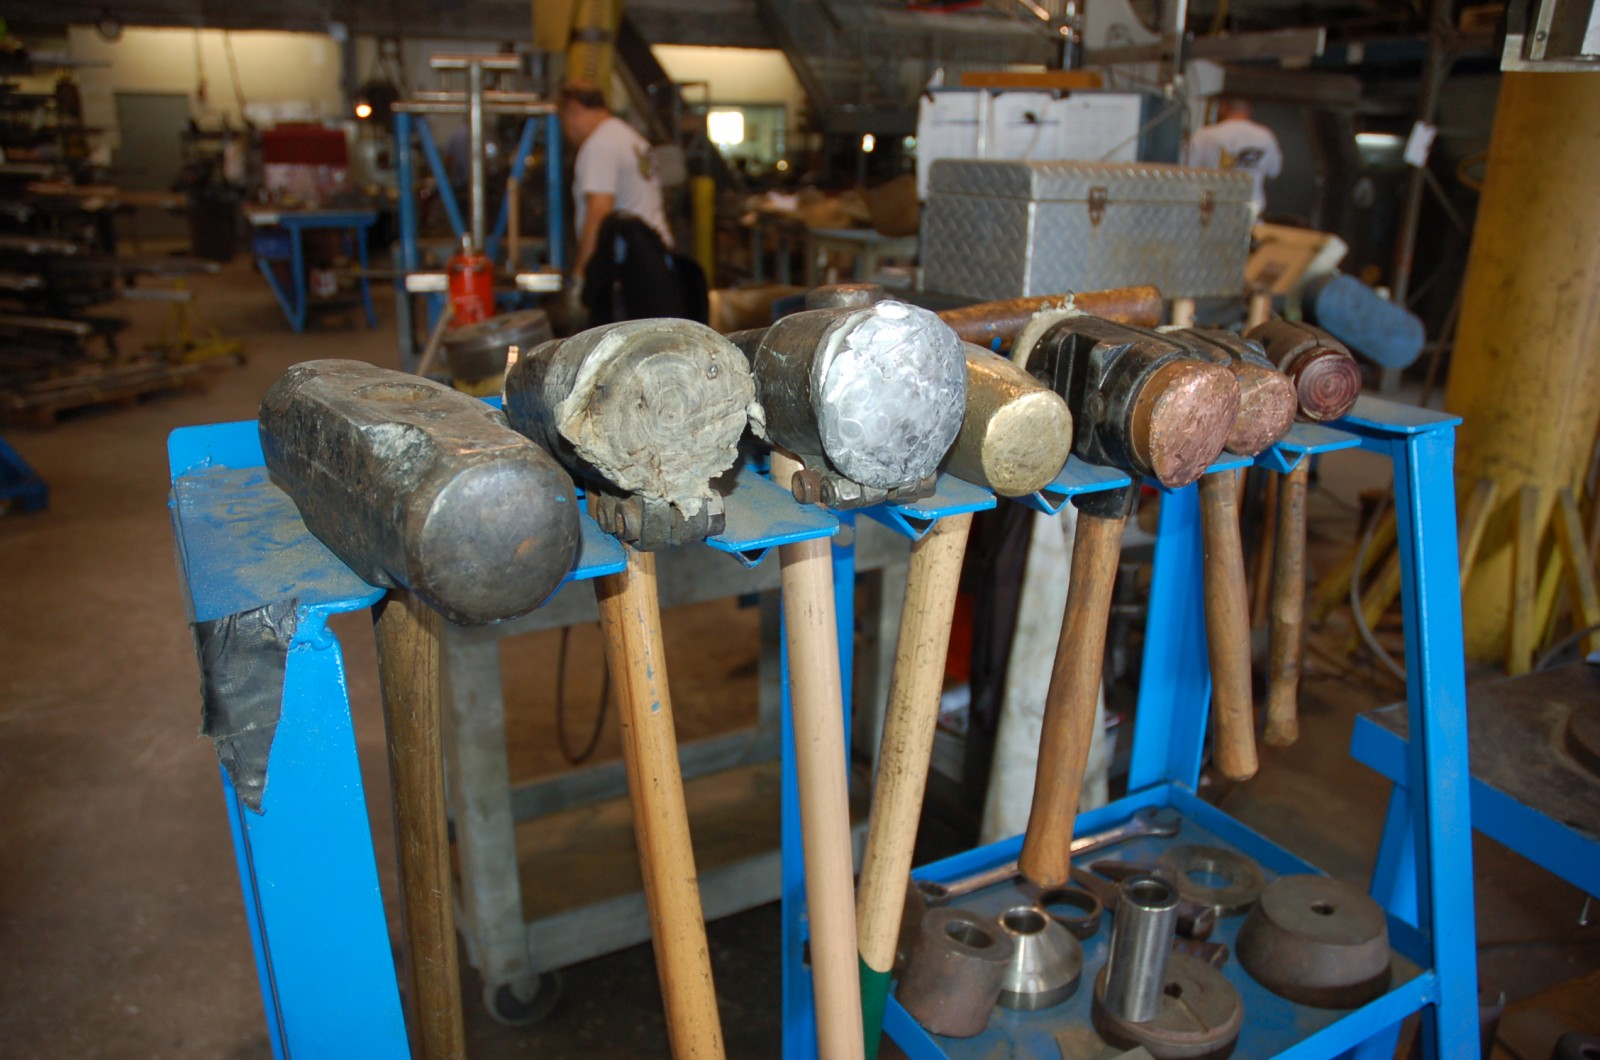 Sledgehammers with a variety of covers, including rawhide, copper and aluminum are used to repair props. PHOTOS BY DORIE COX